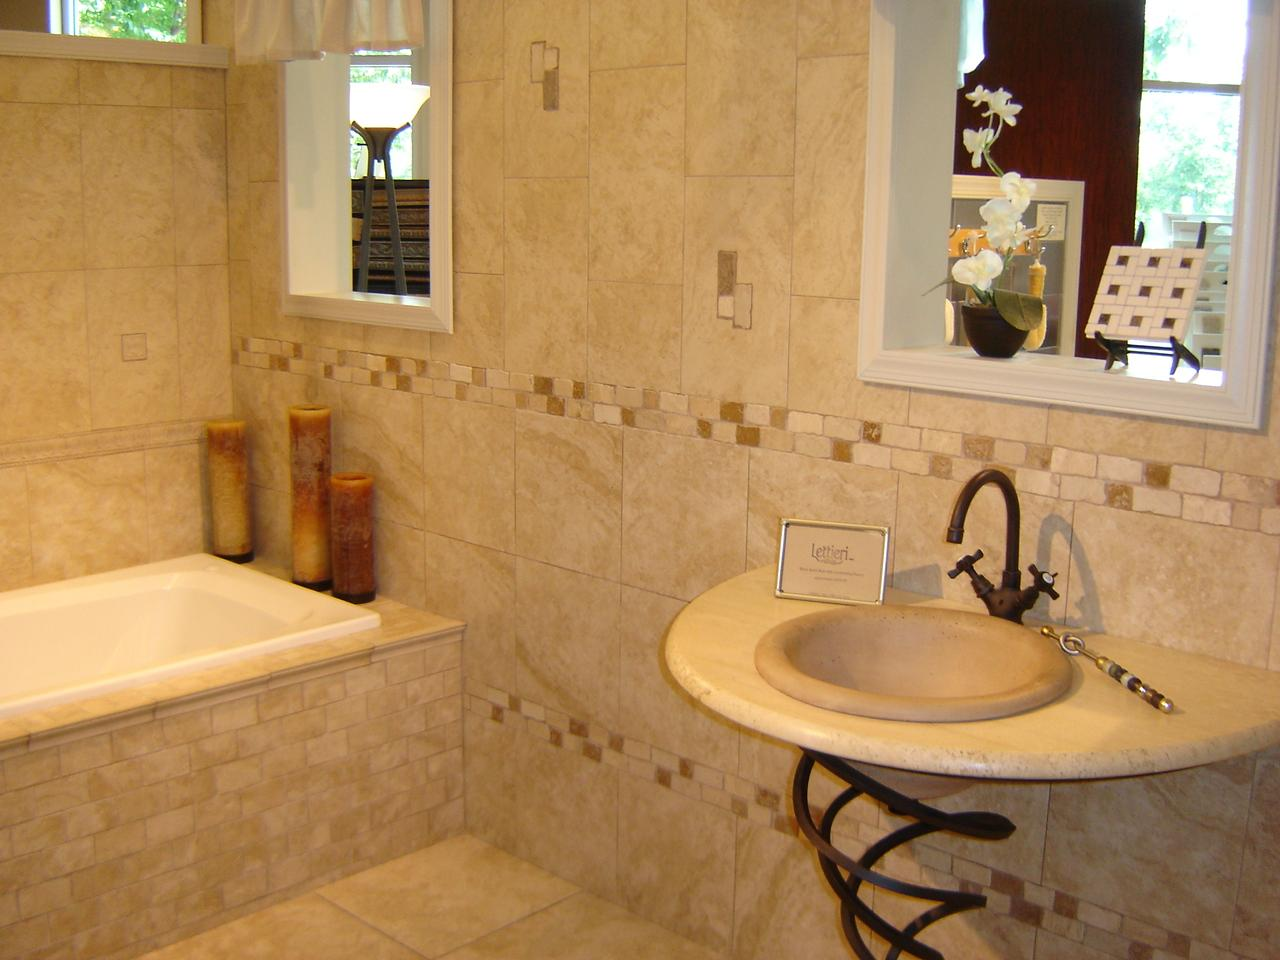 Bathroom tile design ideas Bathroom tile pictures gallery